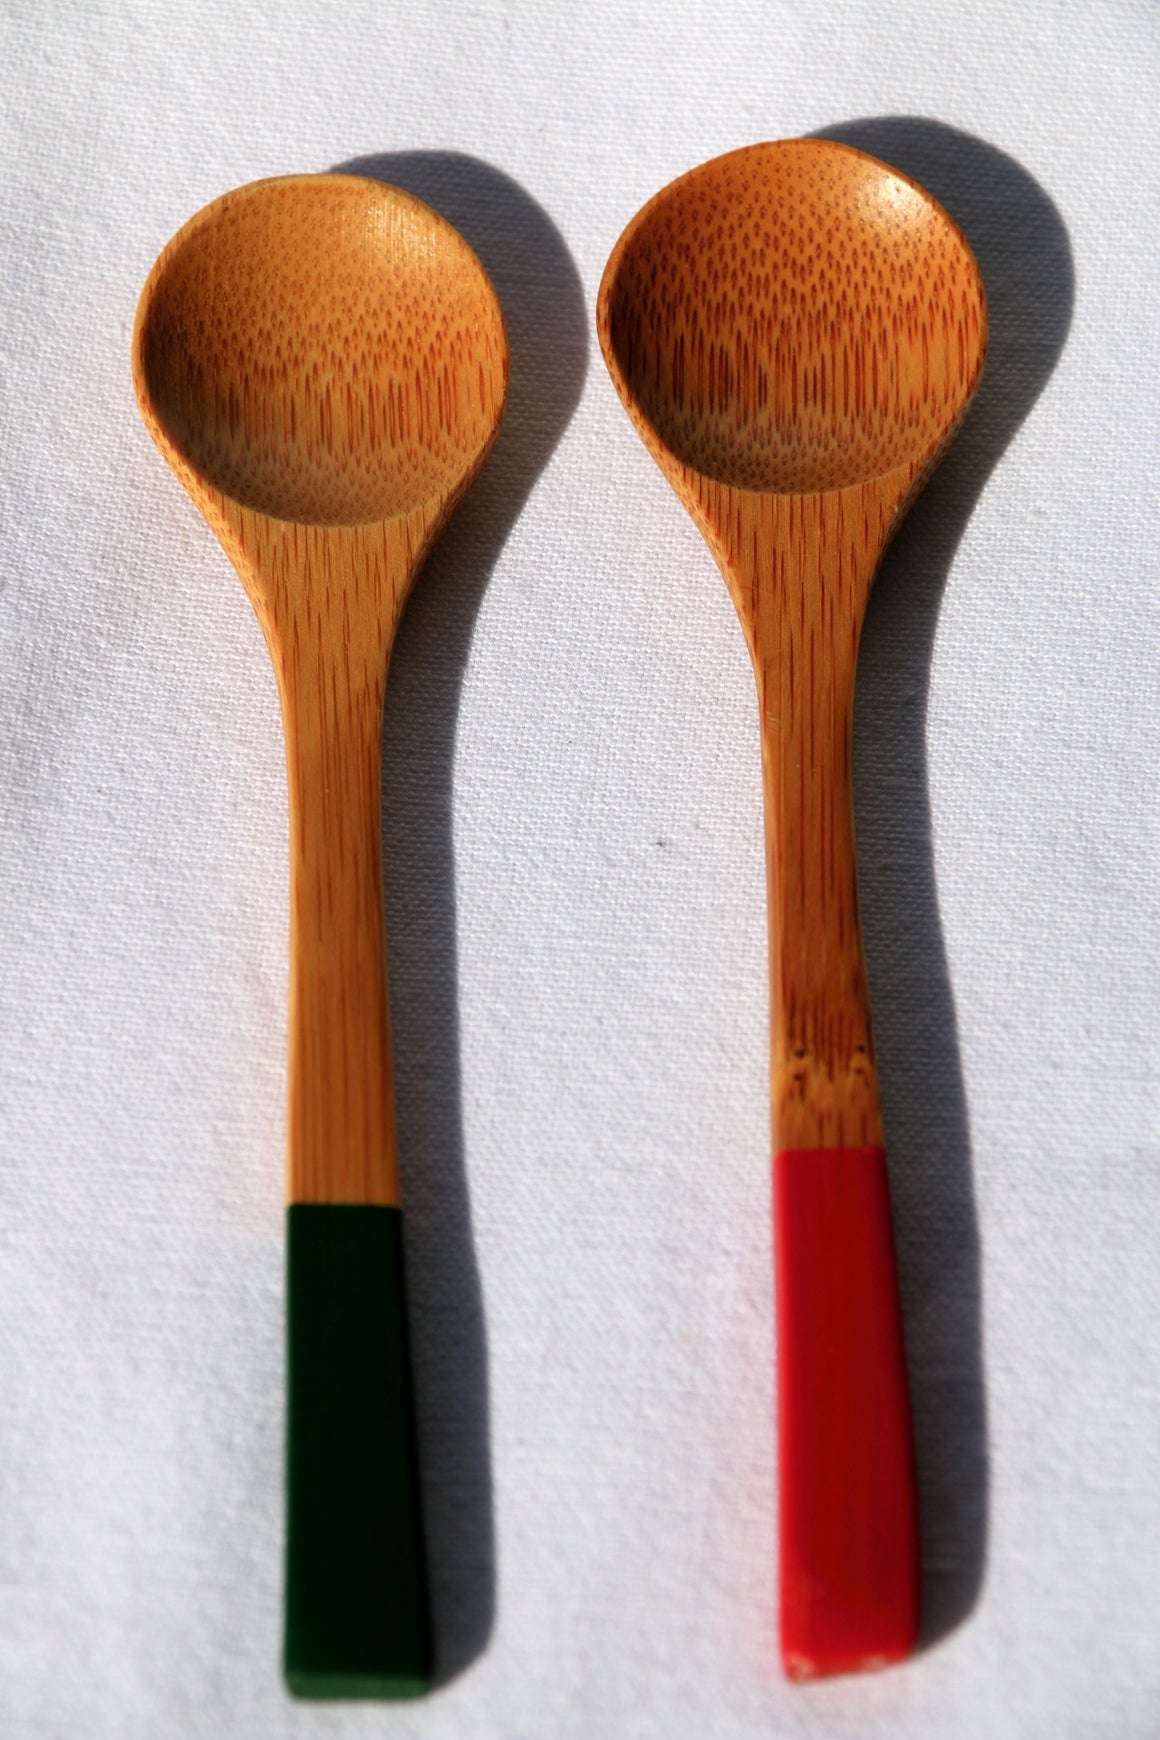 Lacquer-tipped Handcrafted Spoon Duo